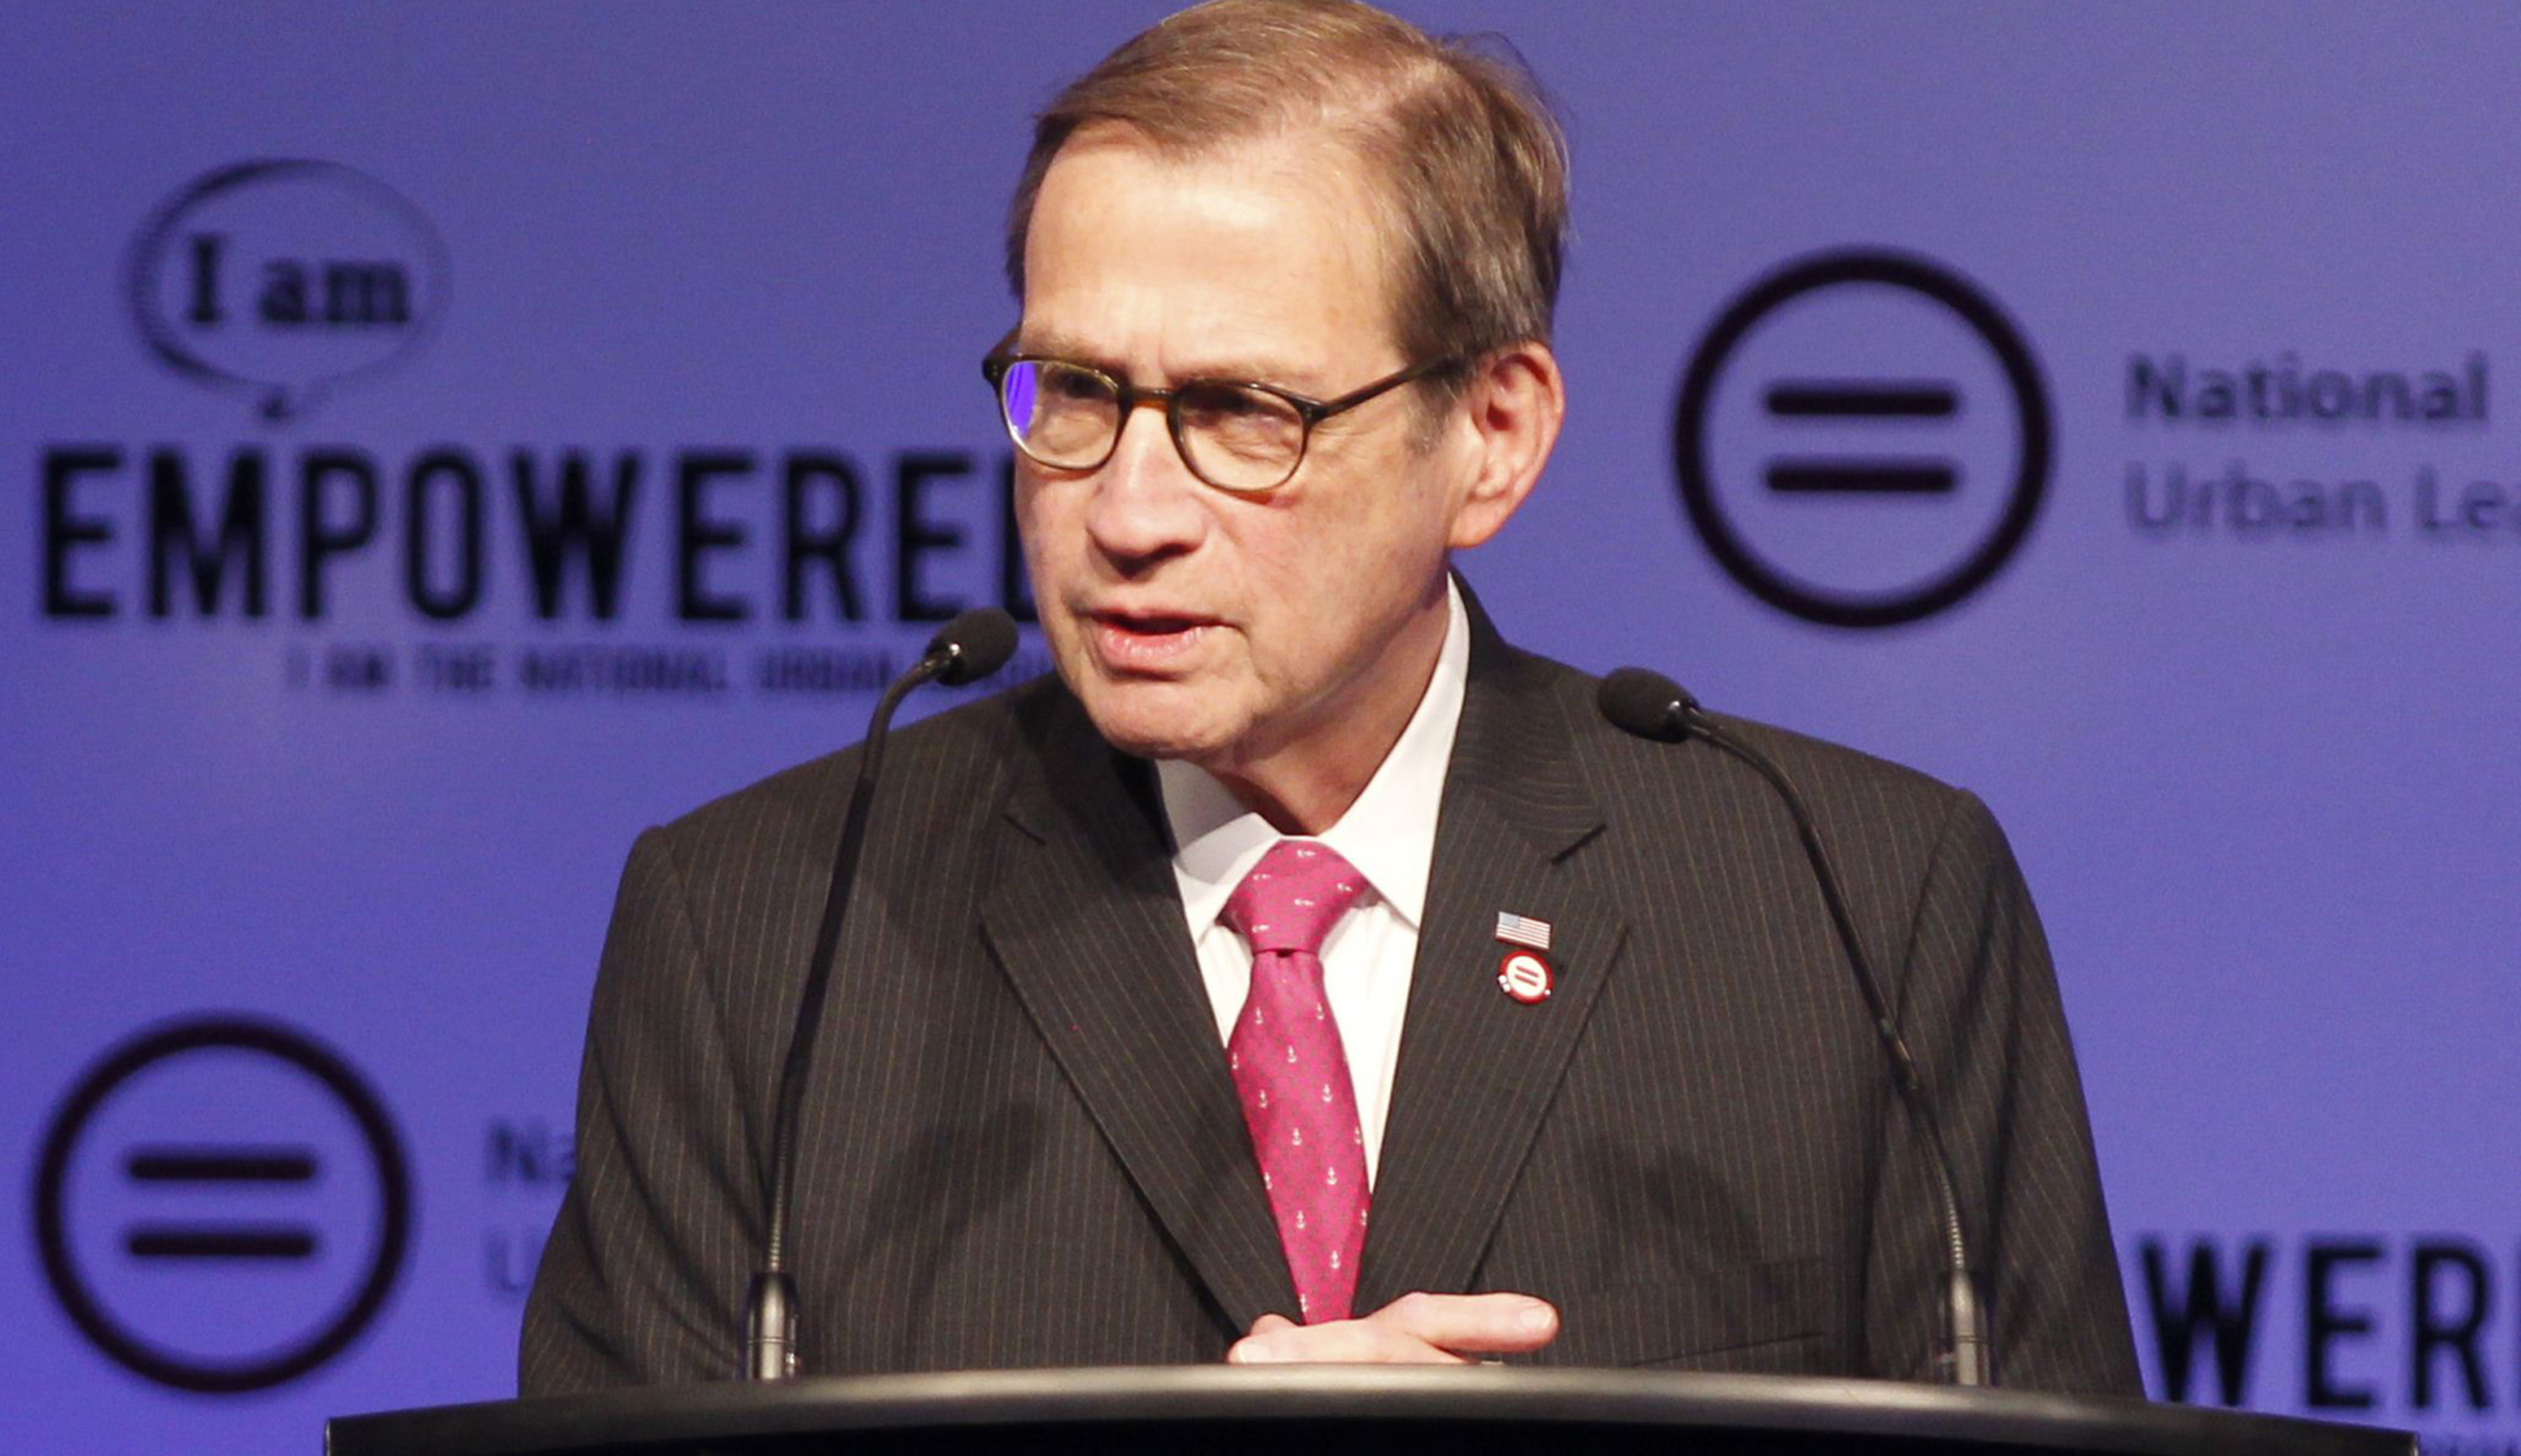 Centene Corporation chairman, president and CEO and National Urban League chair Michael Neidorff speaks at the National Urban League's conference in Fort Lauderdale